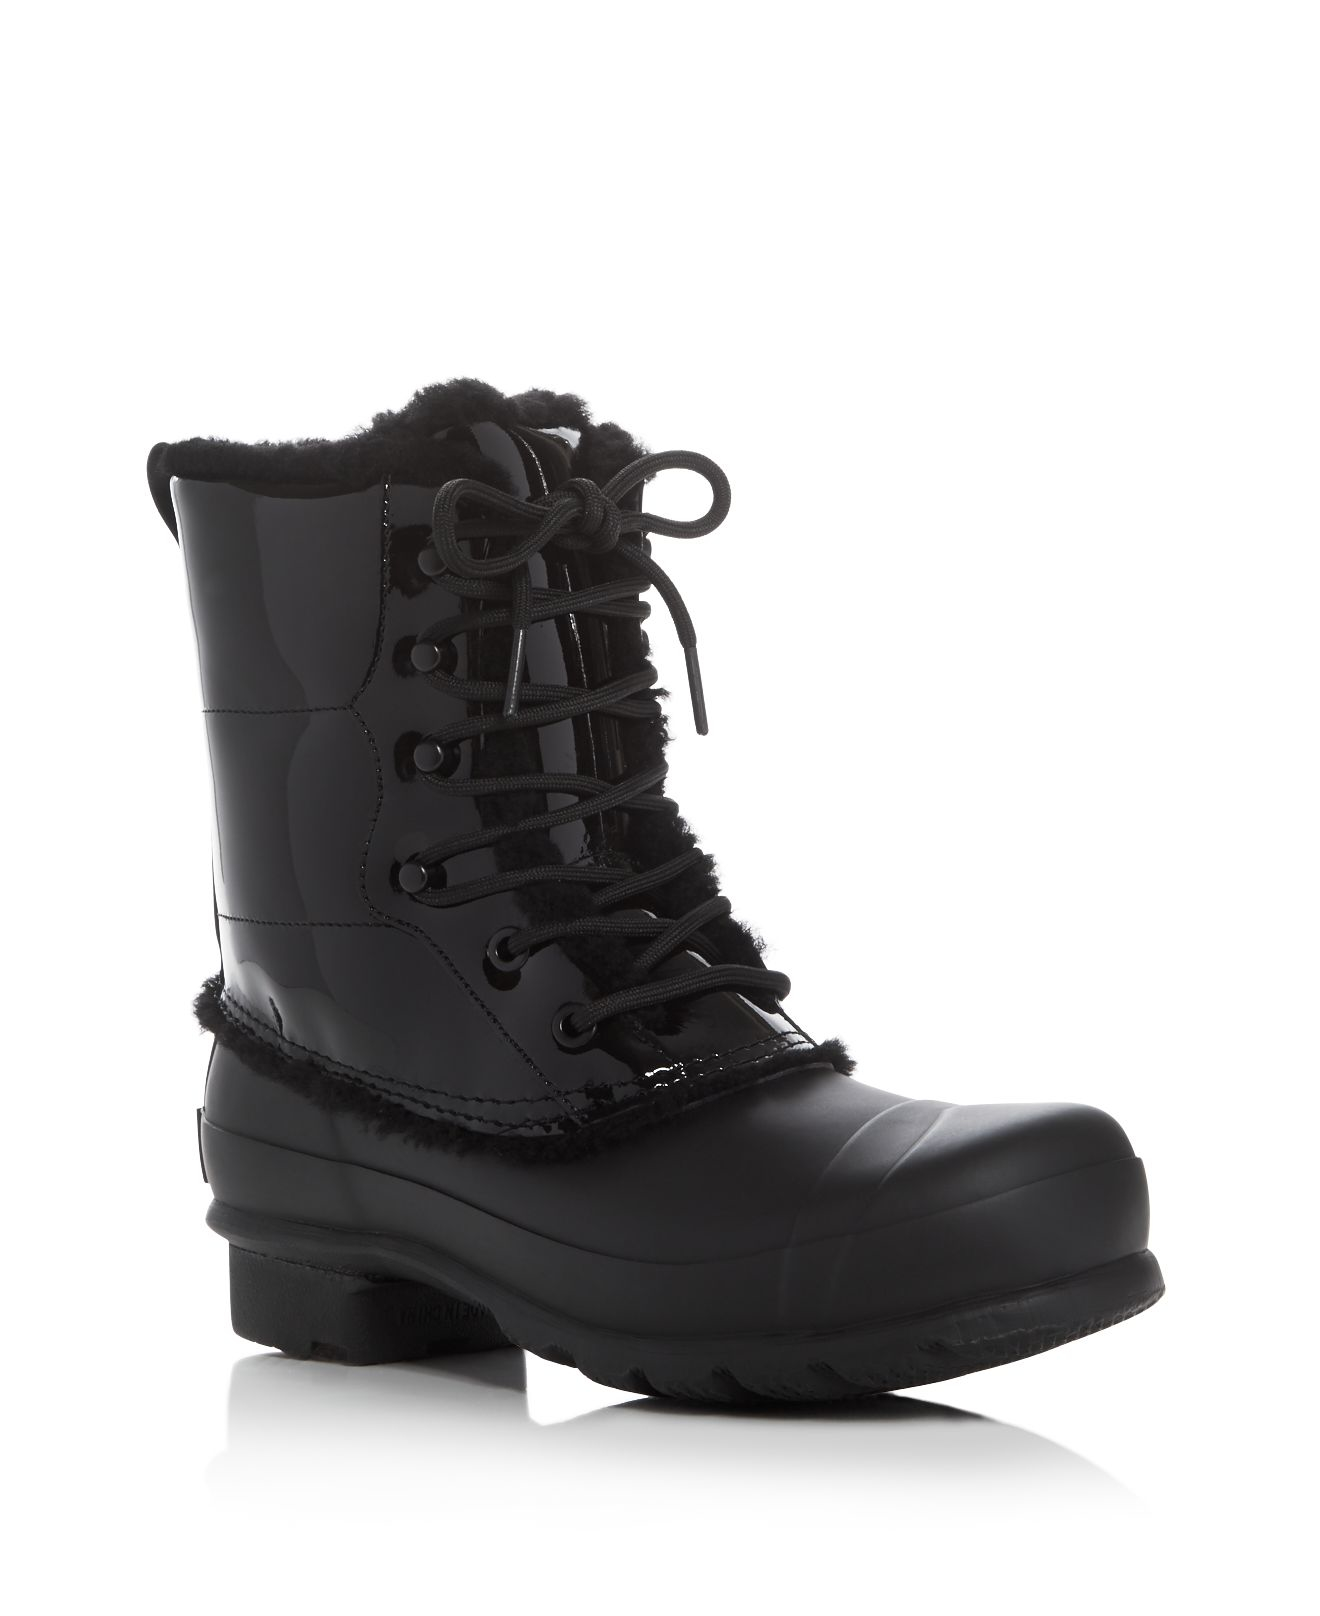 Hunter Original Patent Leather Lace Up Shearling Lined